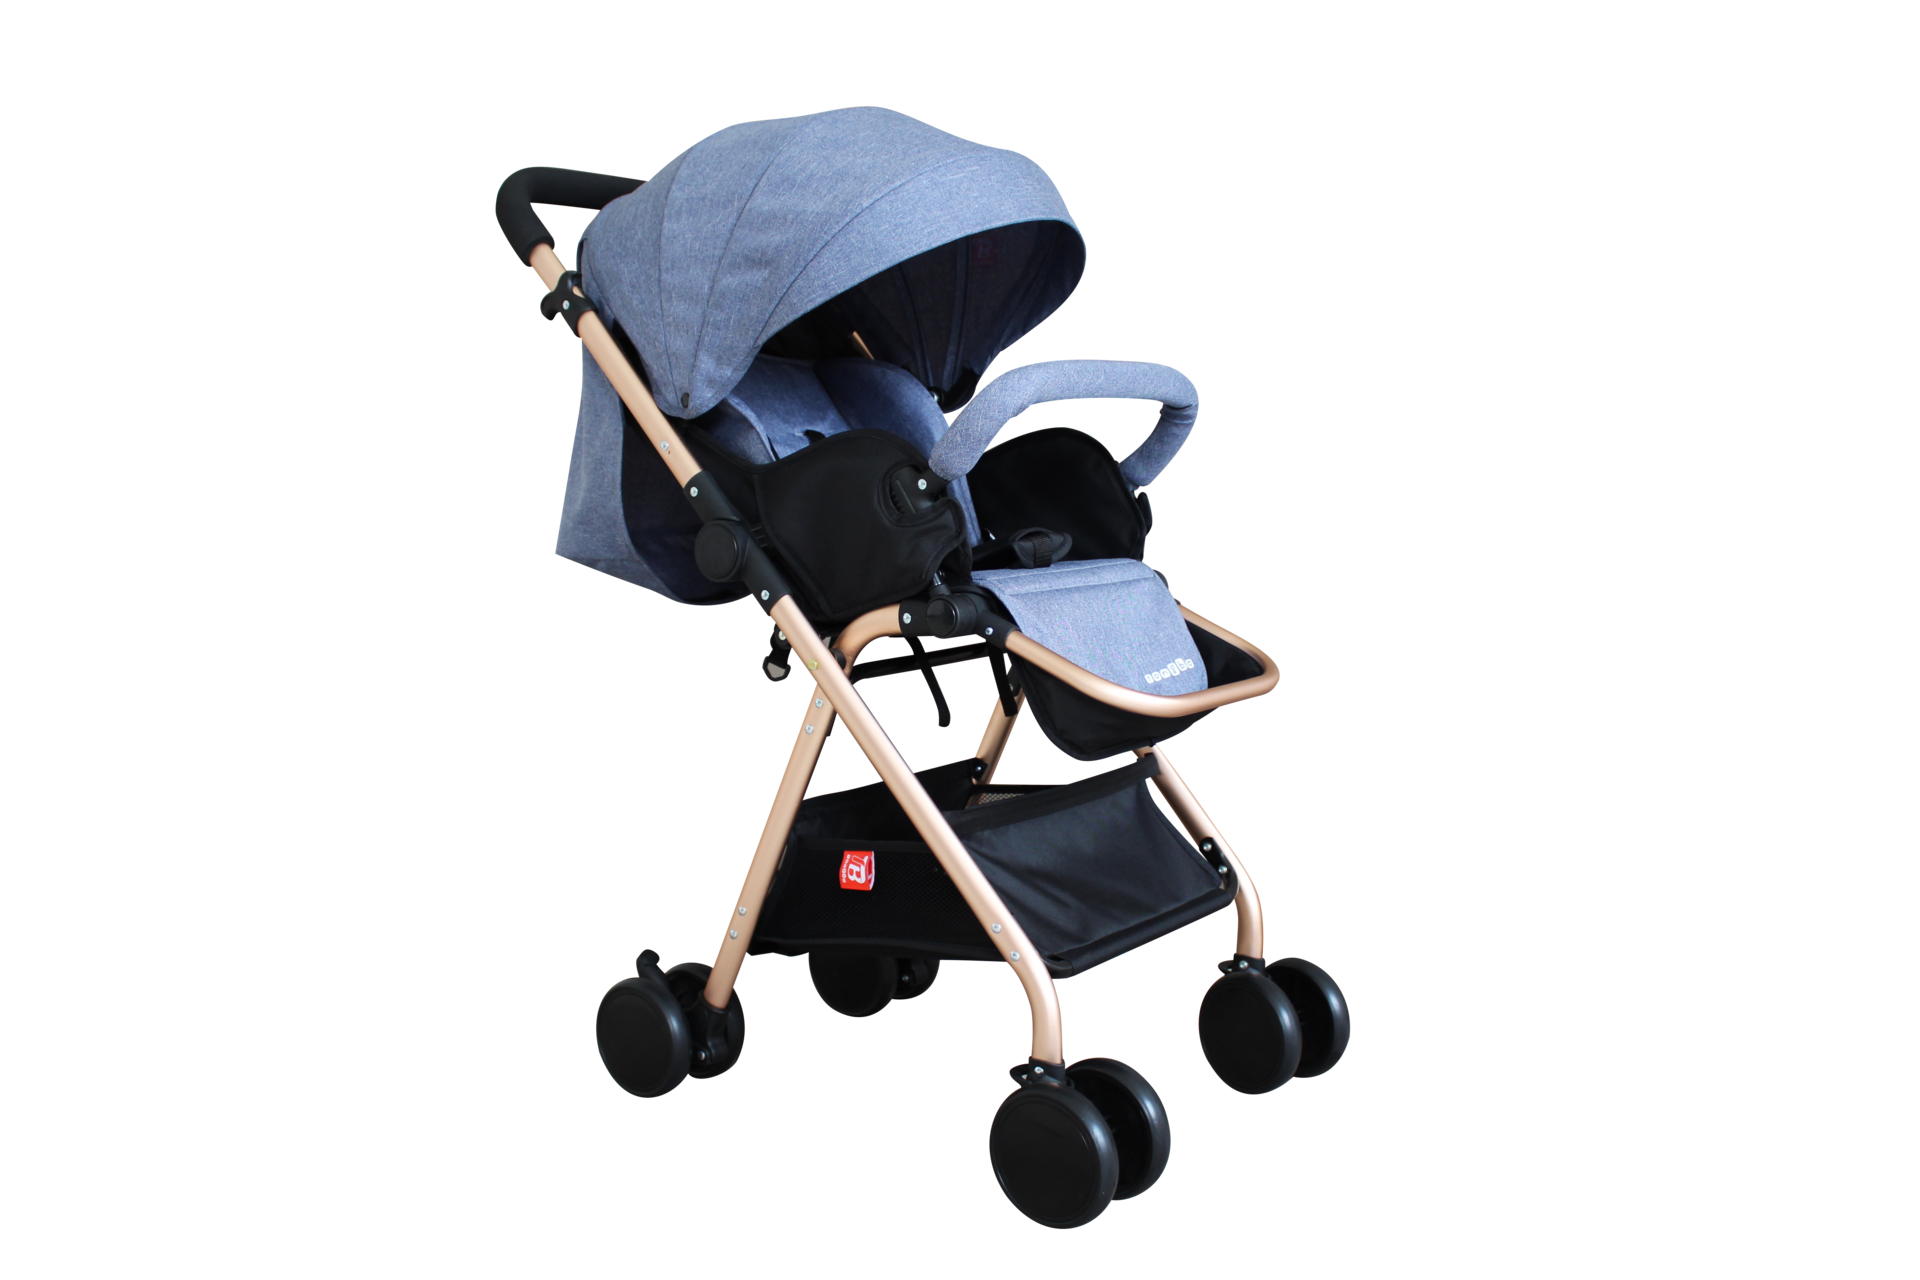 Rodite-baby products suppliers china baby stroller 3 in 1 travel systems en1888 stroller D850A